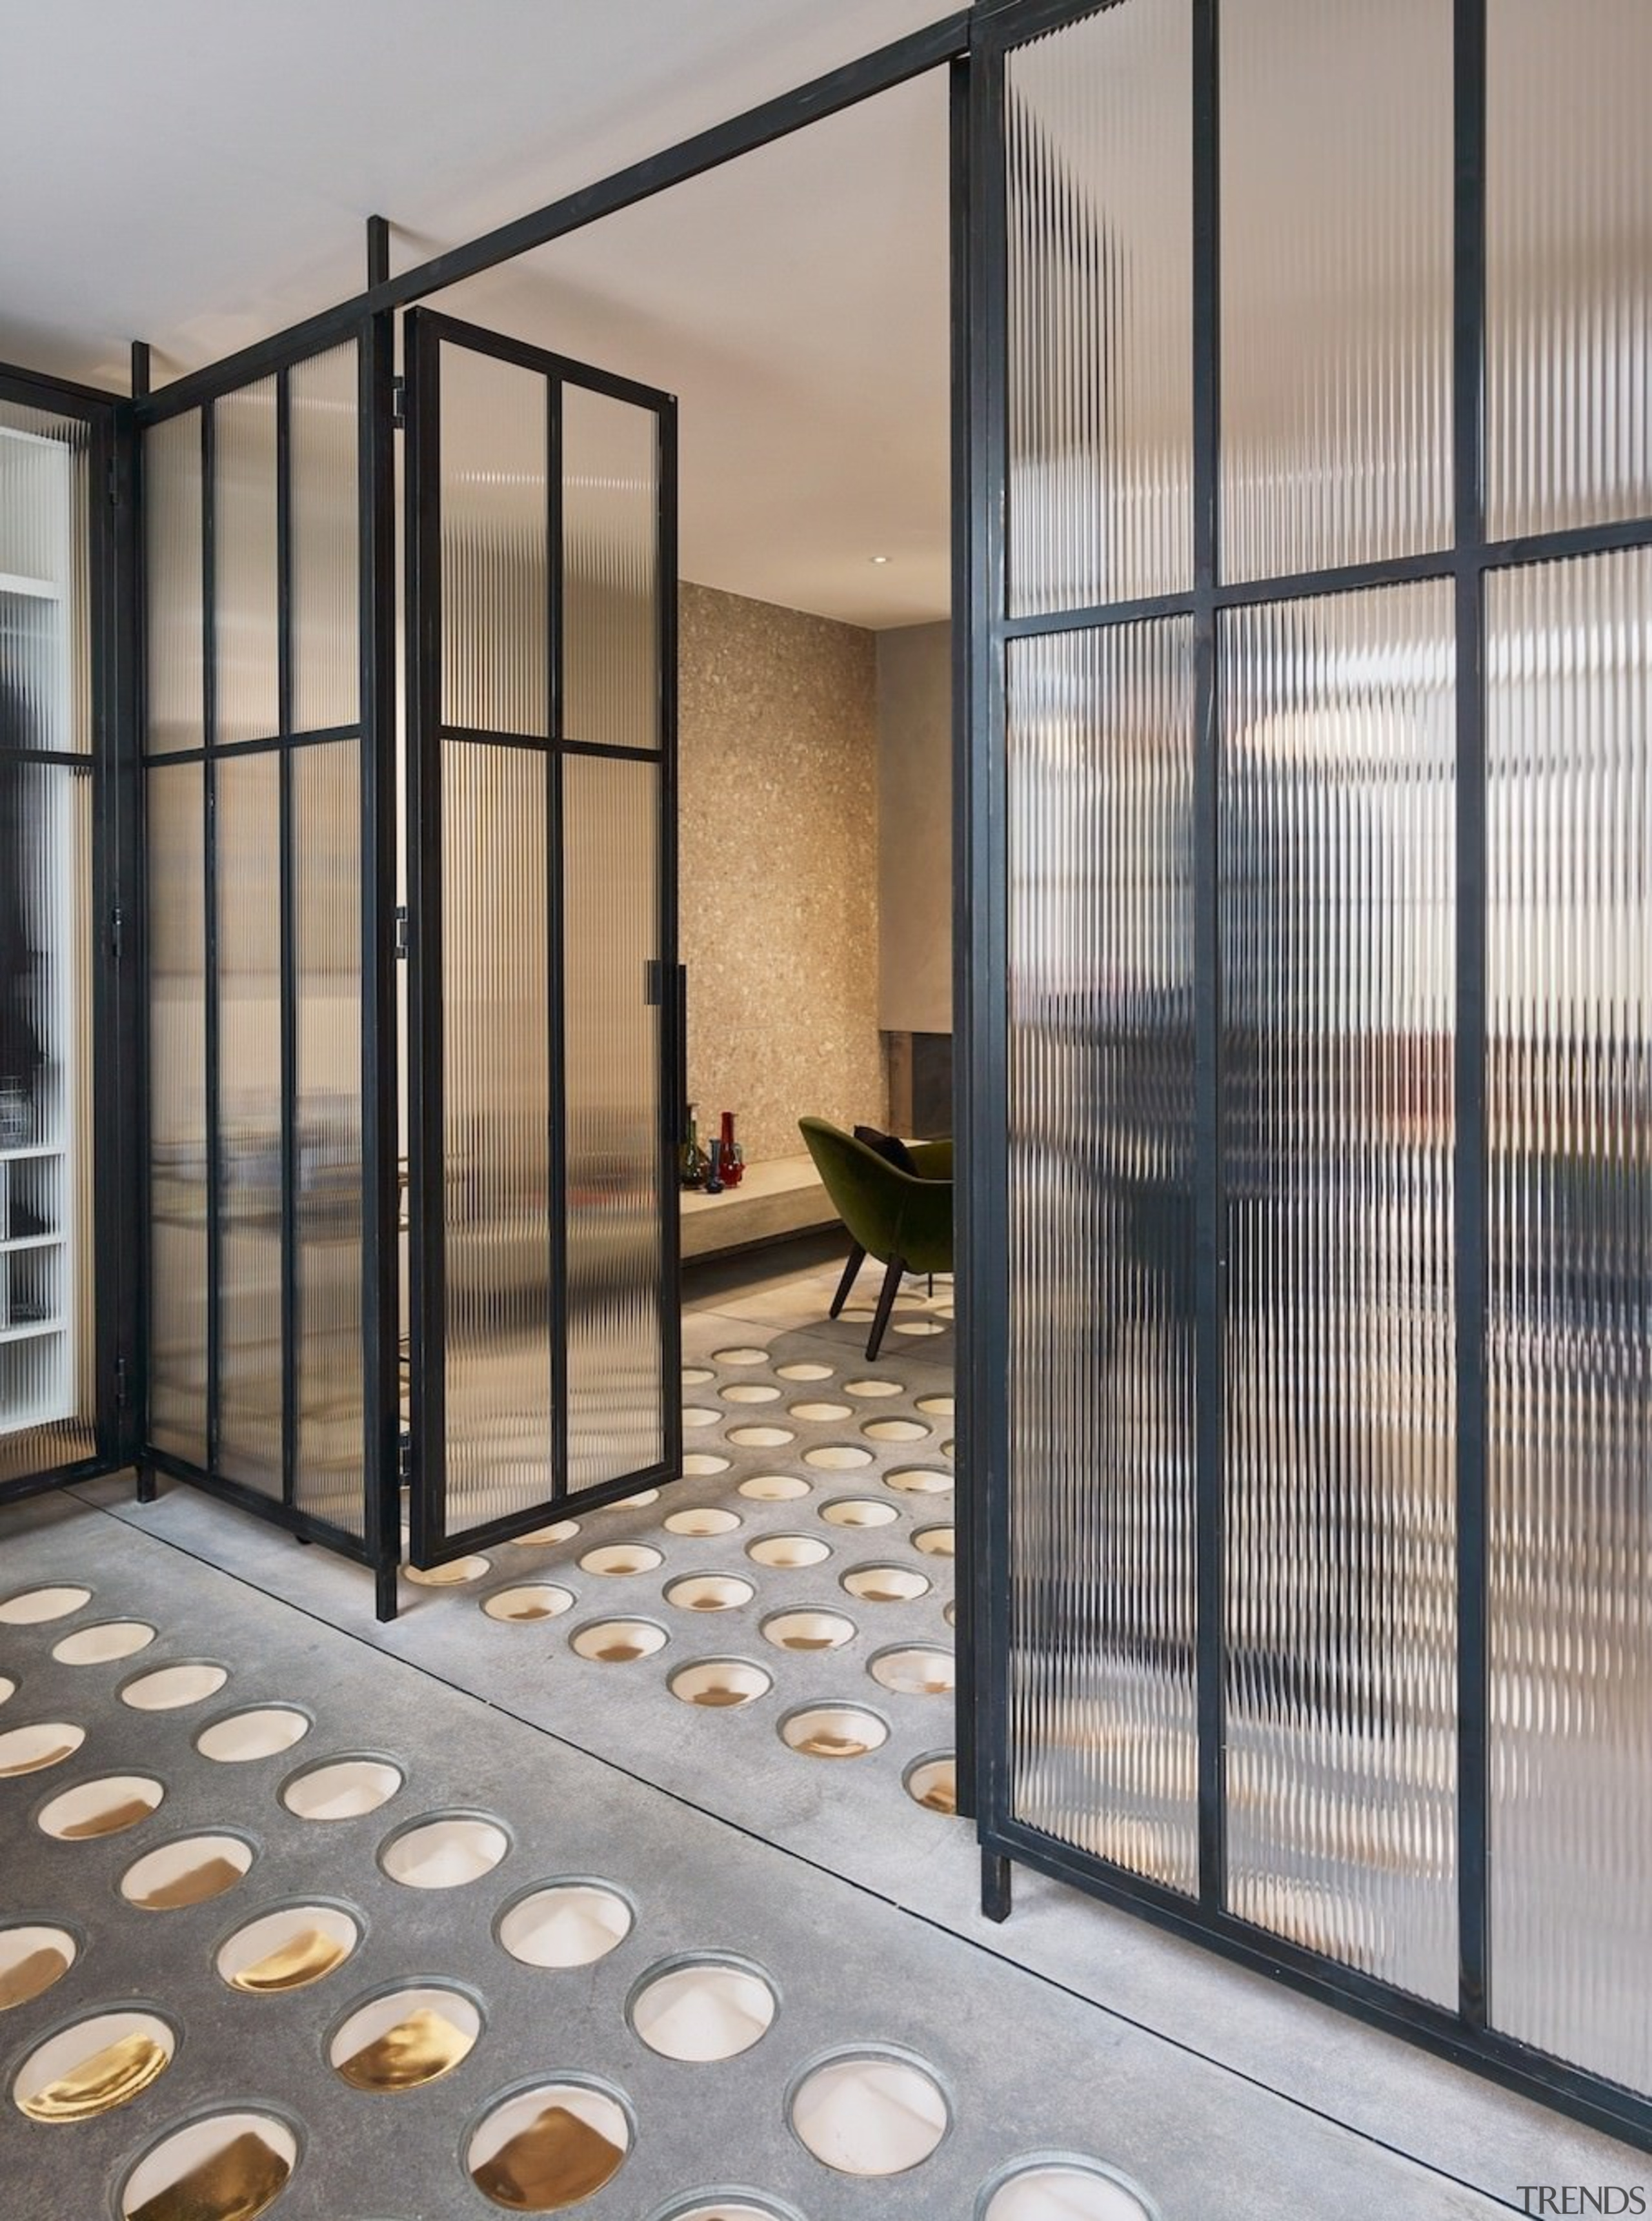 Andy Martin Architecture – Renovation in London - architecture, door, facade, glass, real estate, window, gray